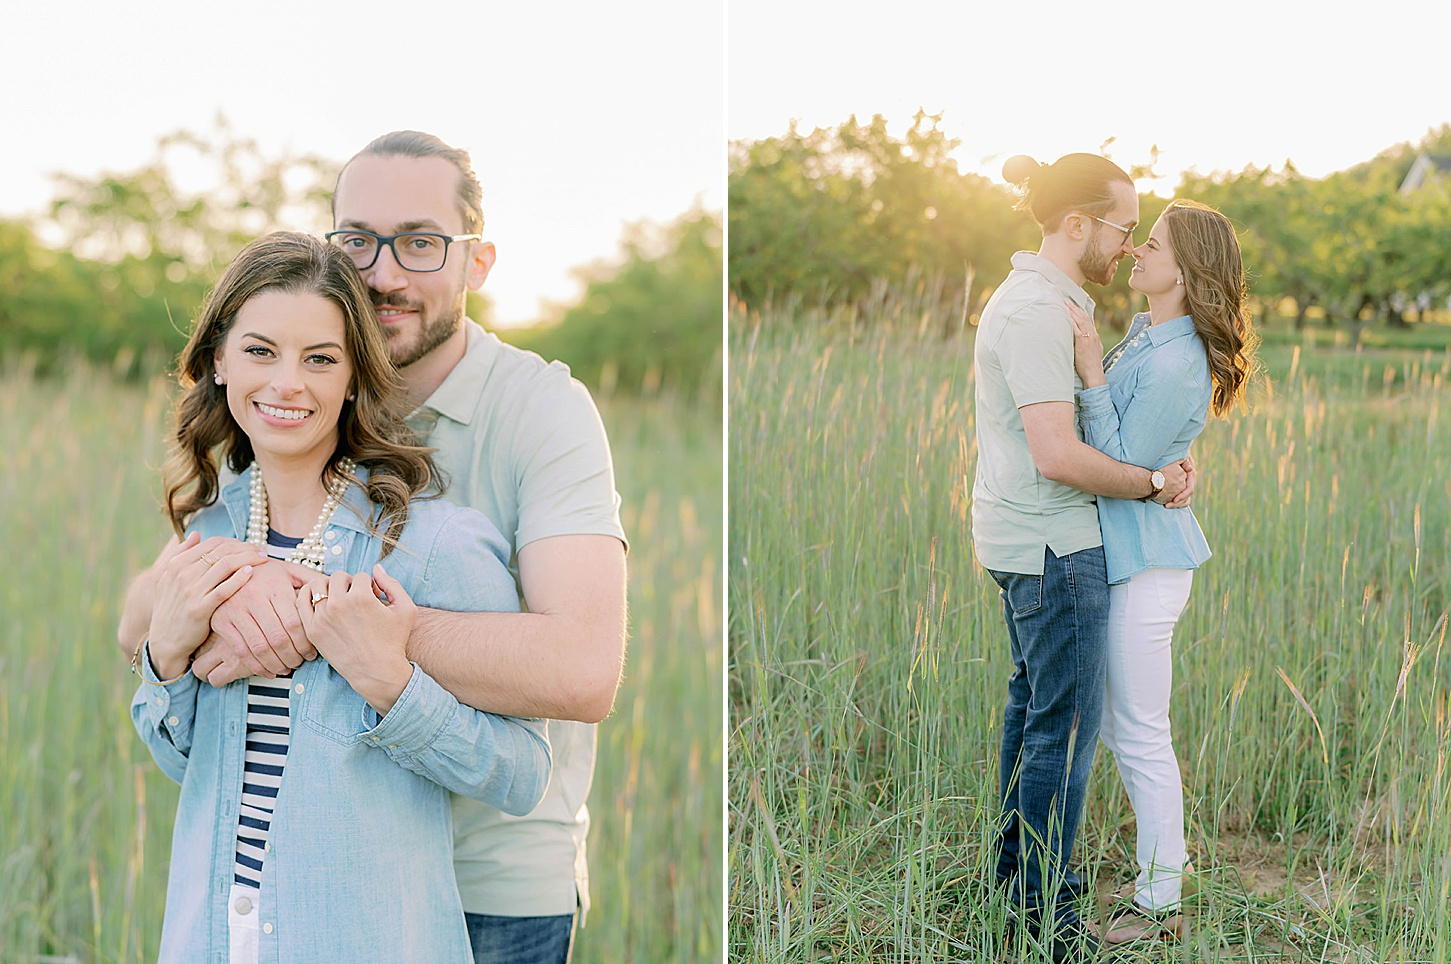 Bast Brothers Garden Center Mullica Hill NJ Engagement Photography by Magdalena Studios 0030